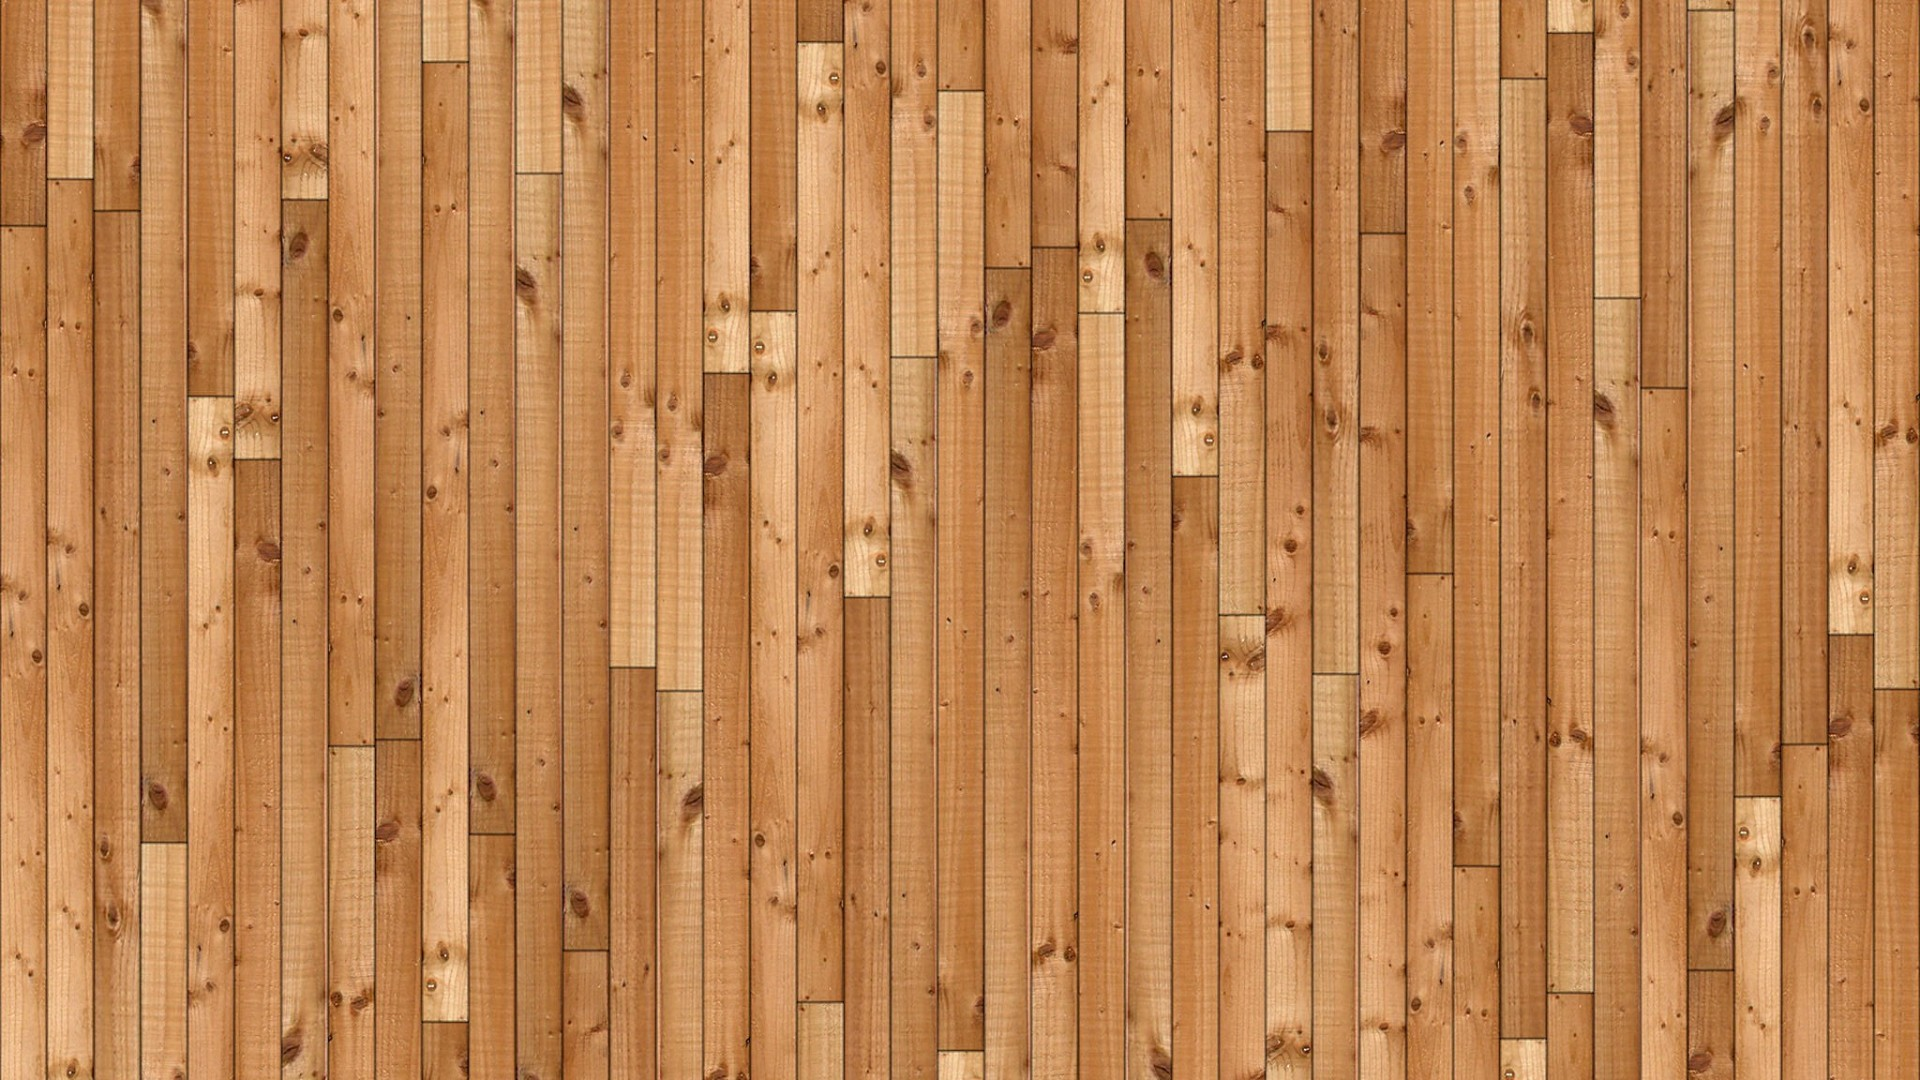 Holzwand Textur 35 Hd Wood Wallpapers Backgrounds For Free Download